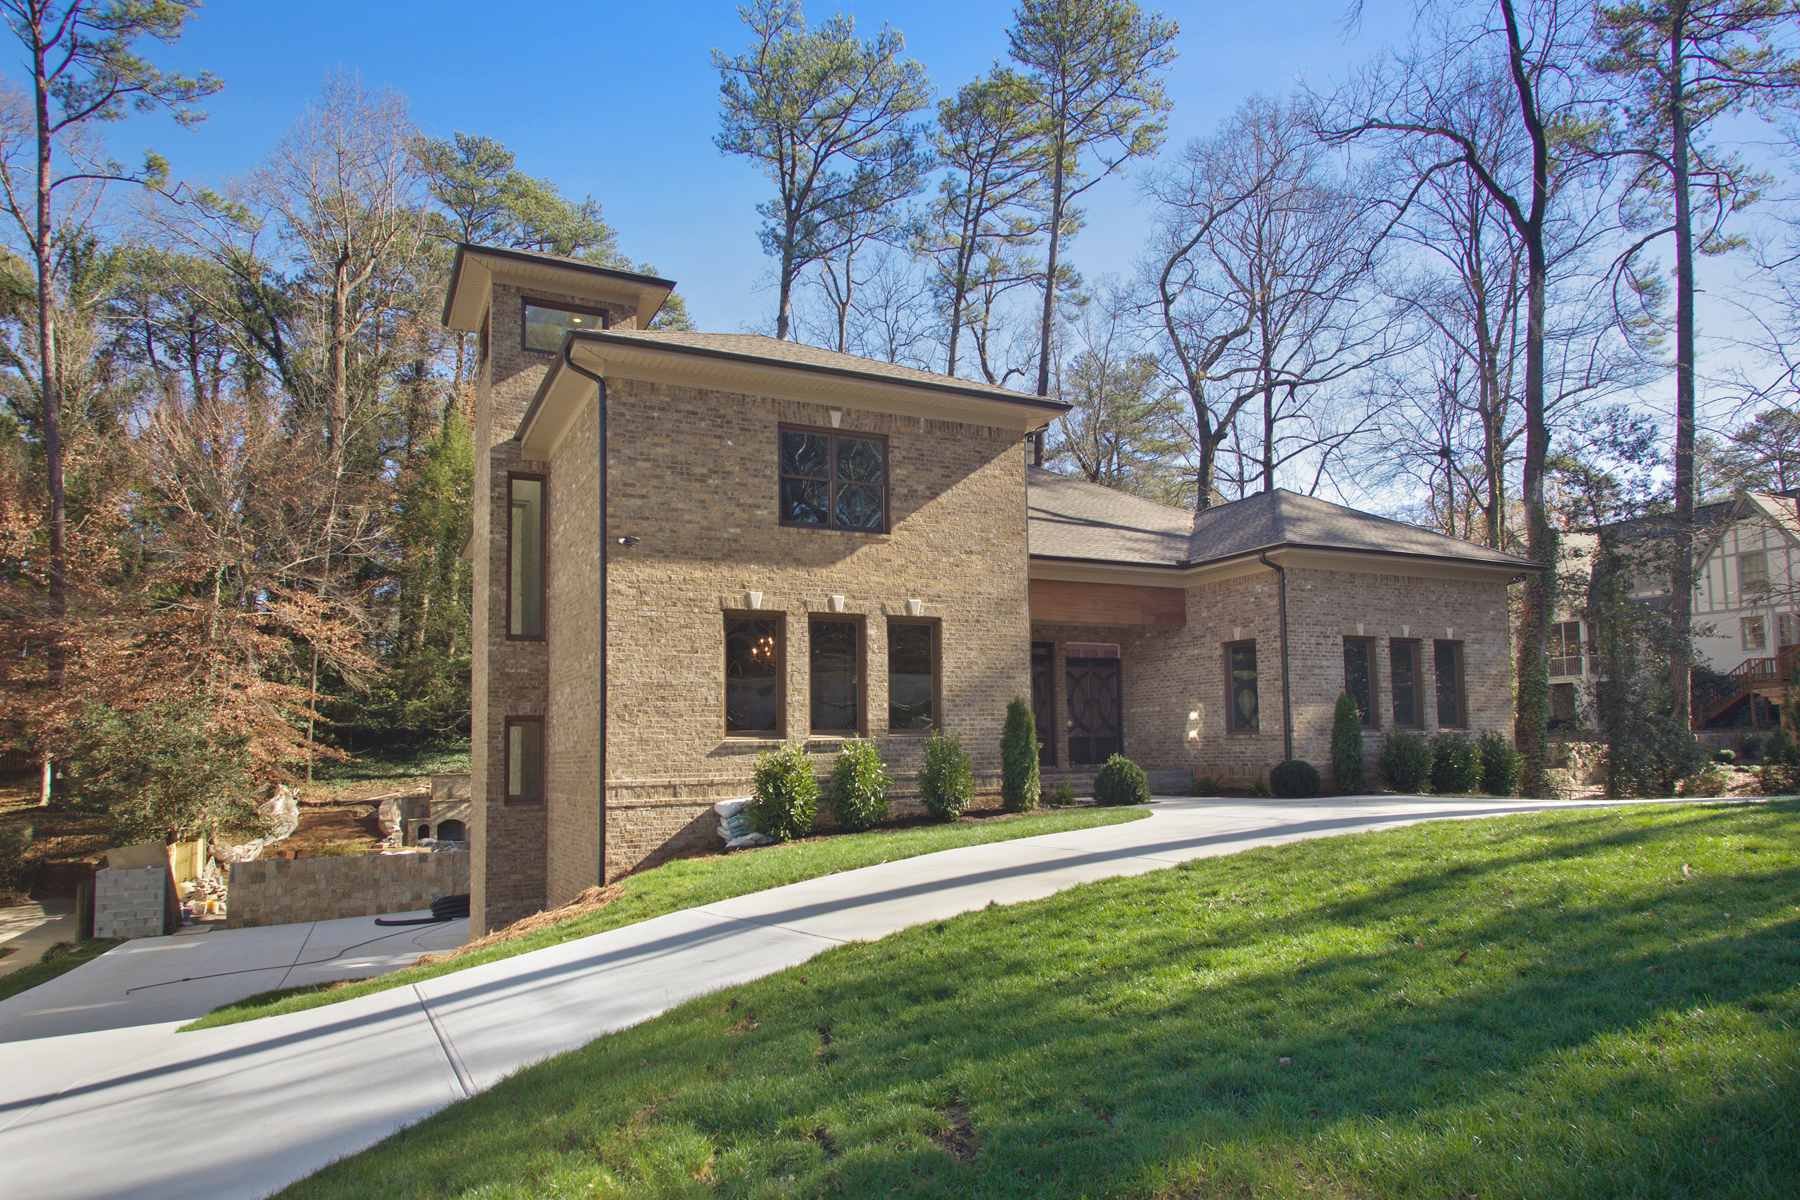 단독 가정 주택 용 매매 에 Sprawling New Home In Morningside With Resort-style Backyard 1801 Wellbourne Drive NE Morningside, Atlanta, 조지아 30324 미국